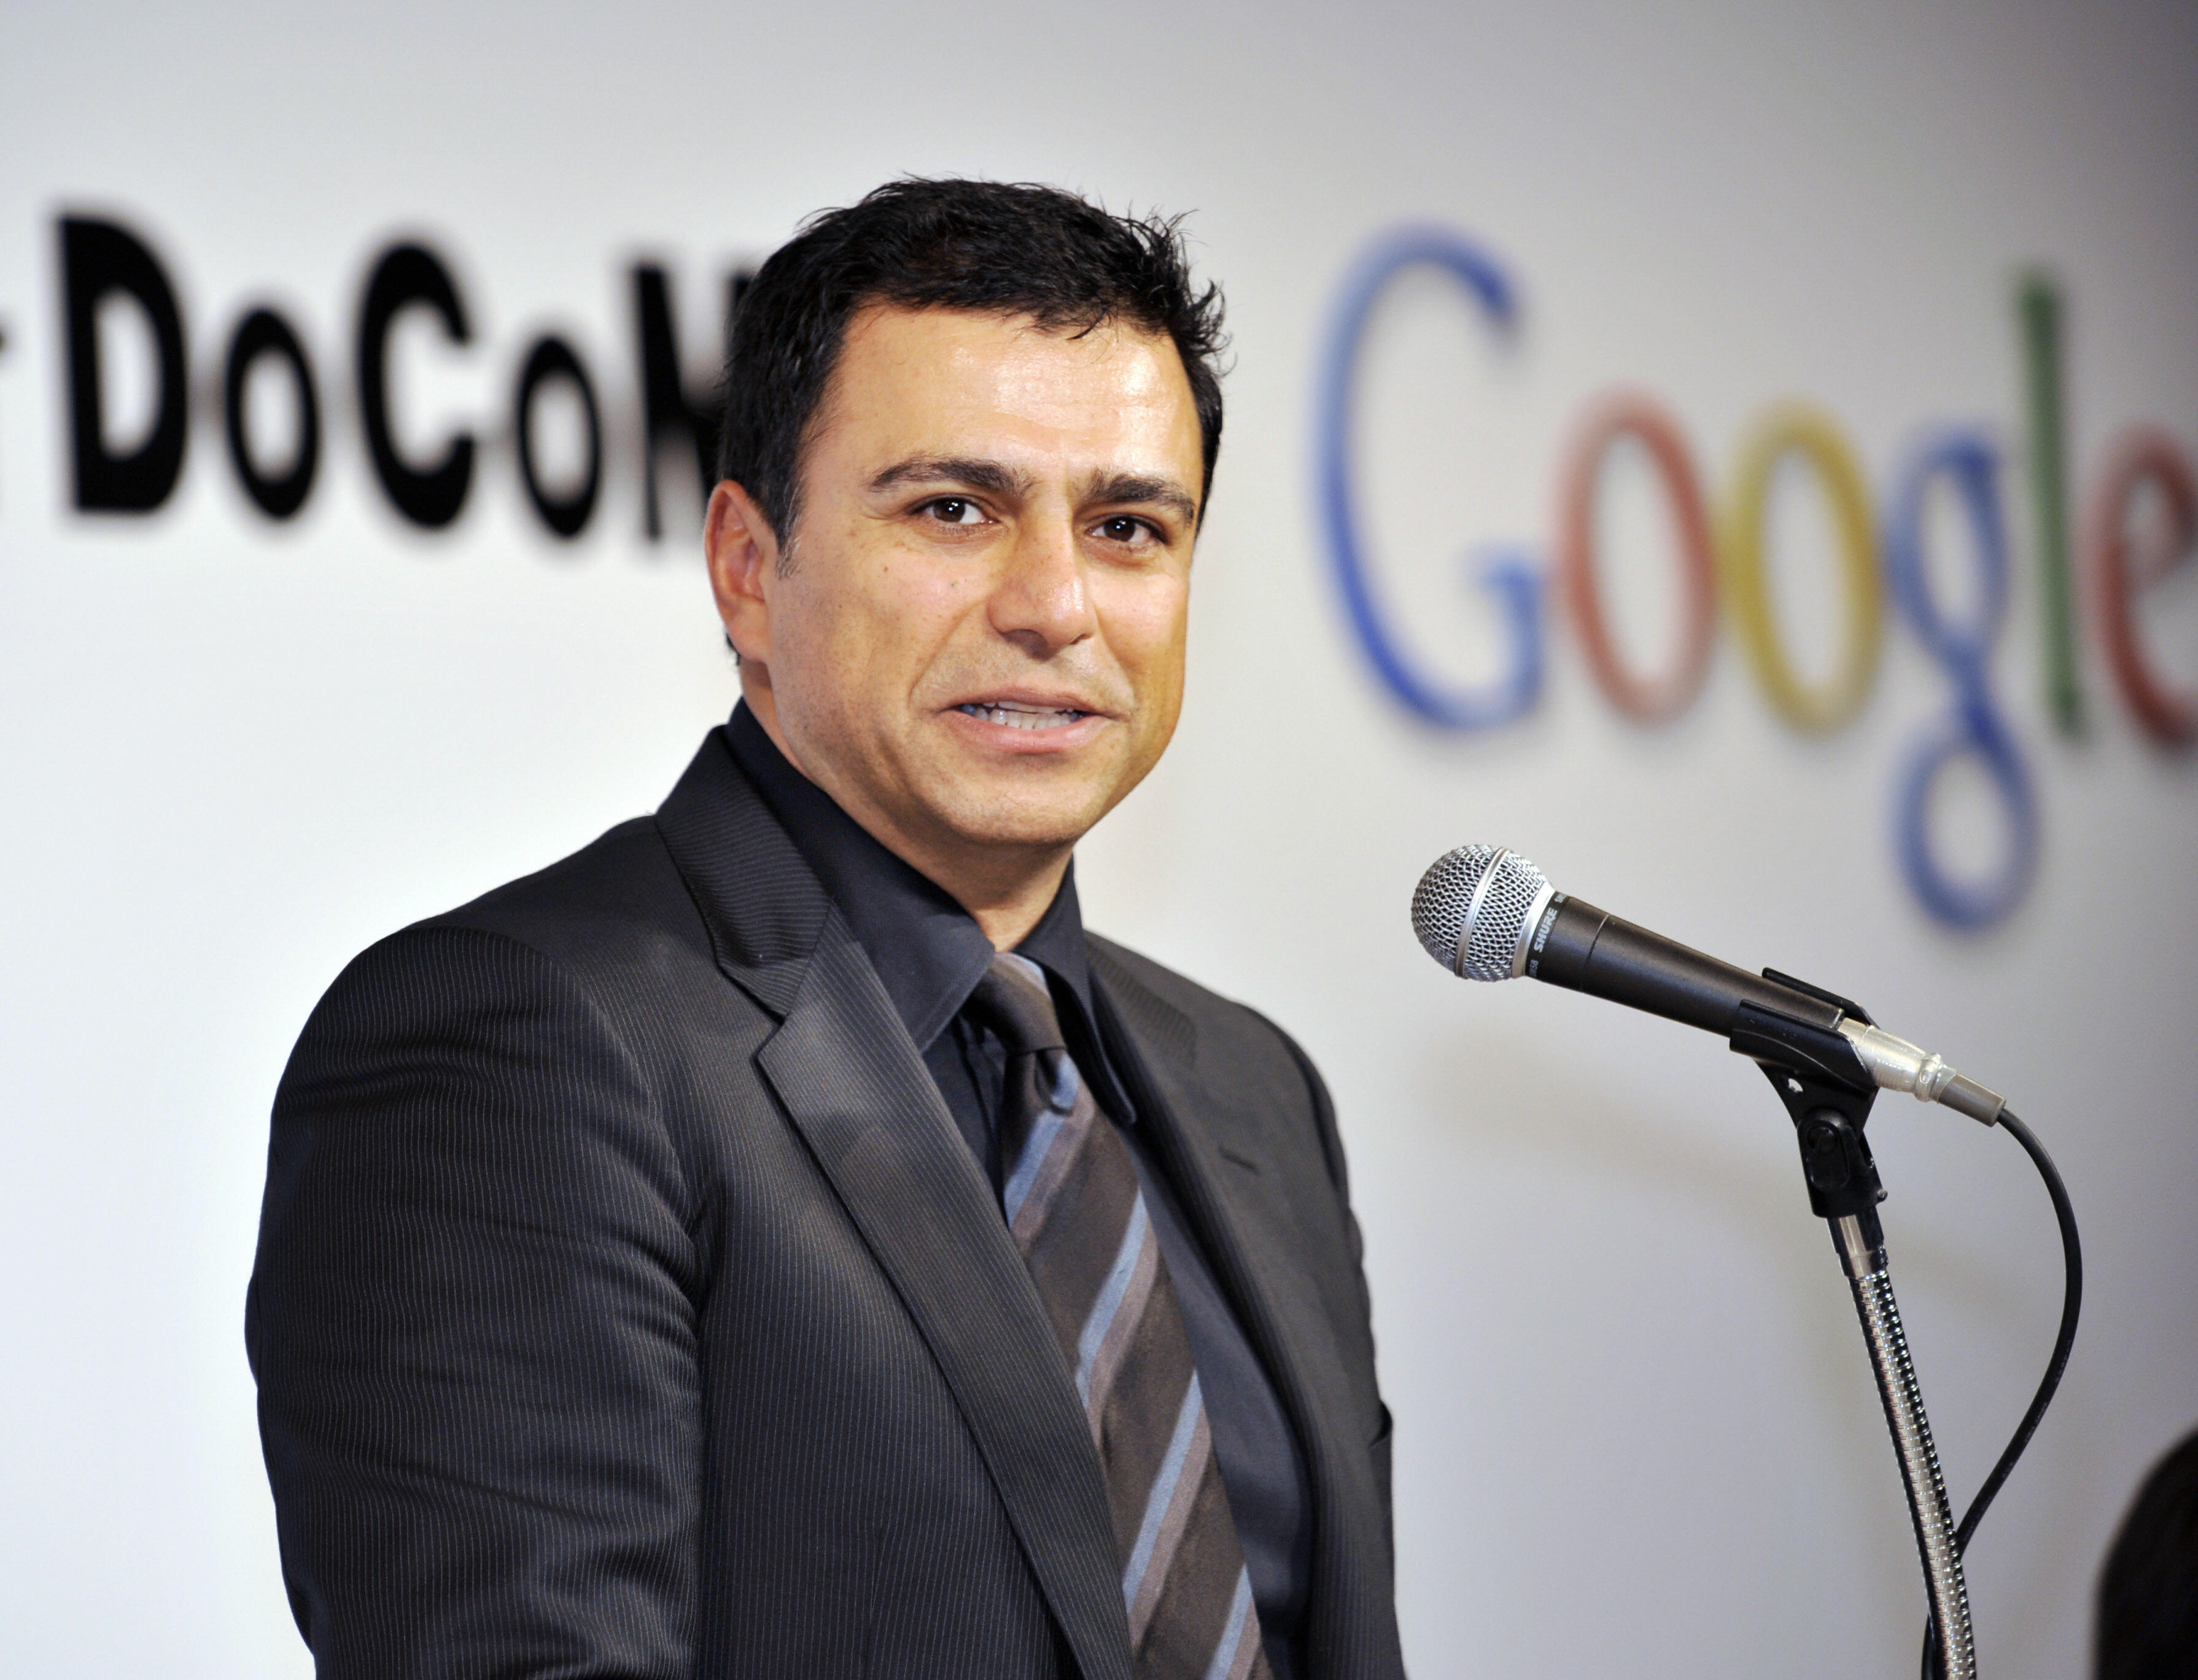 US Internet giant Google senior vice pre